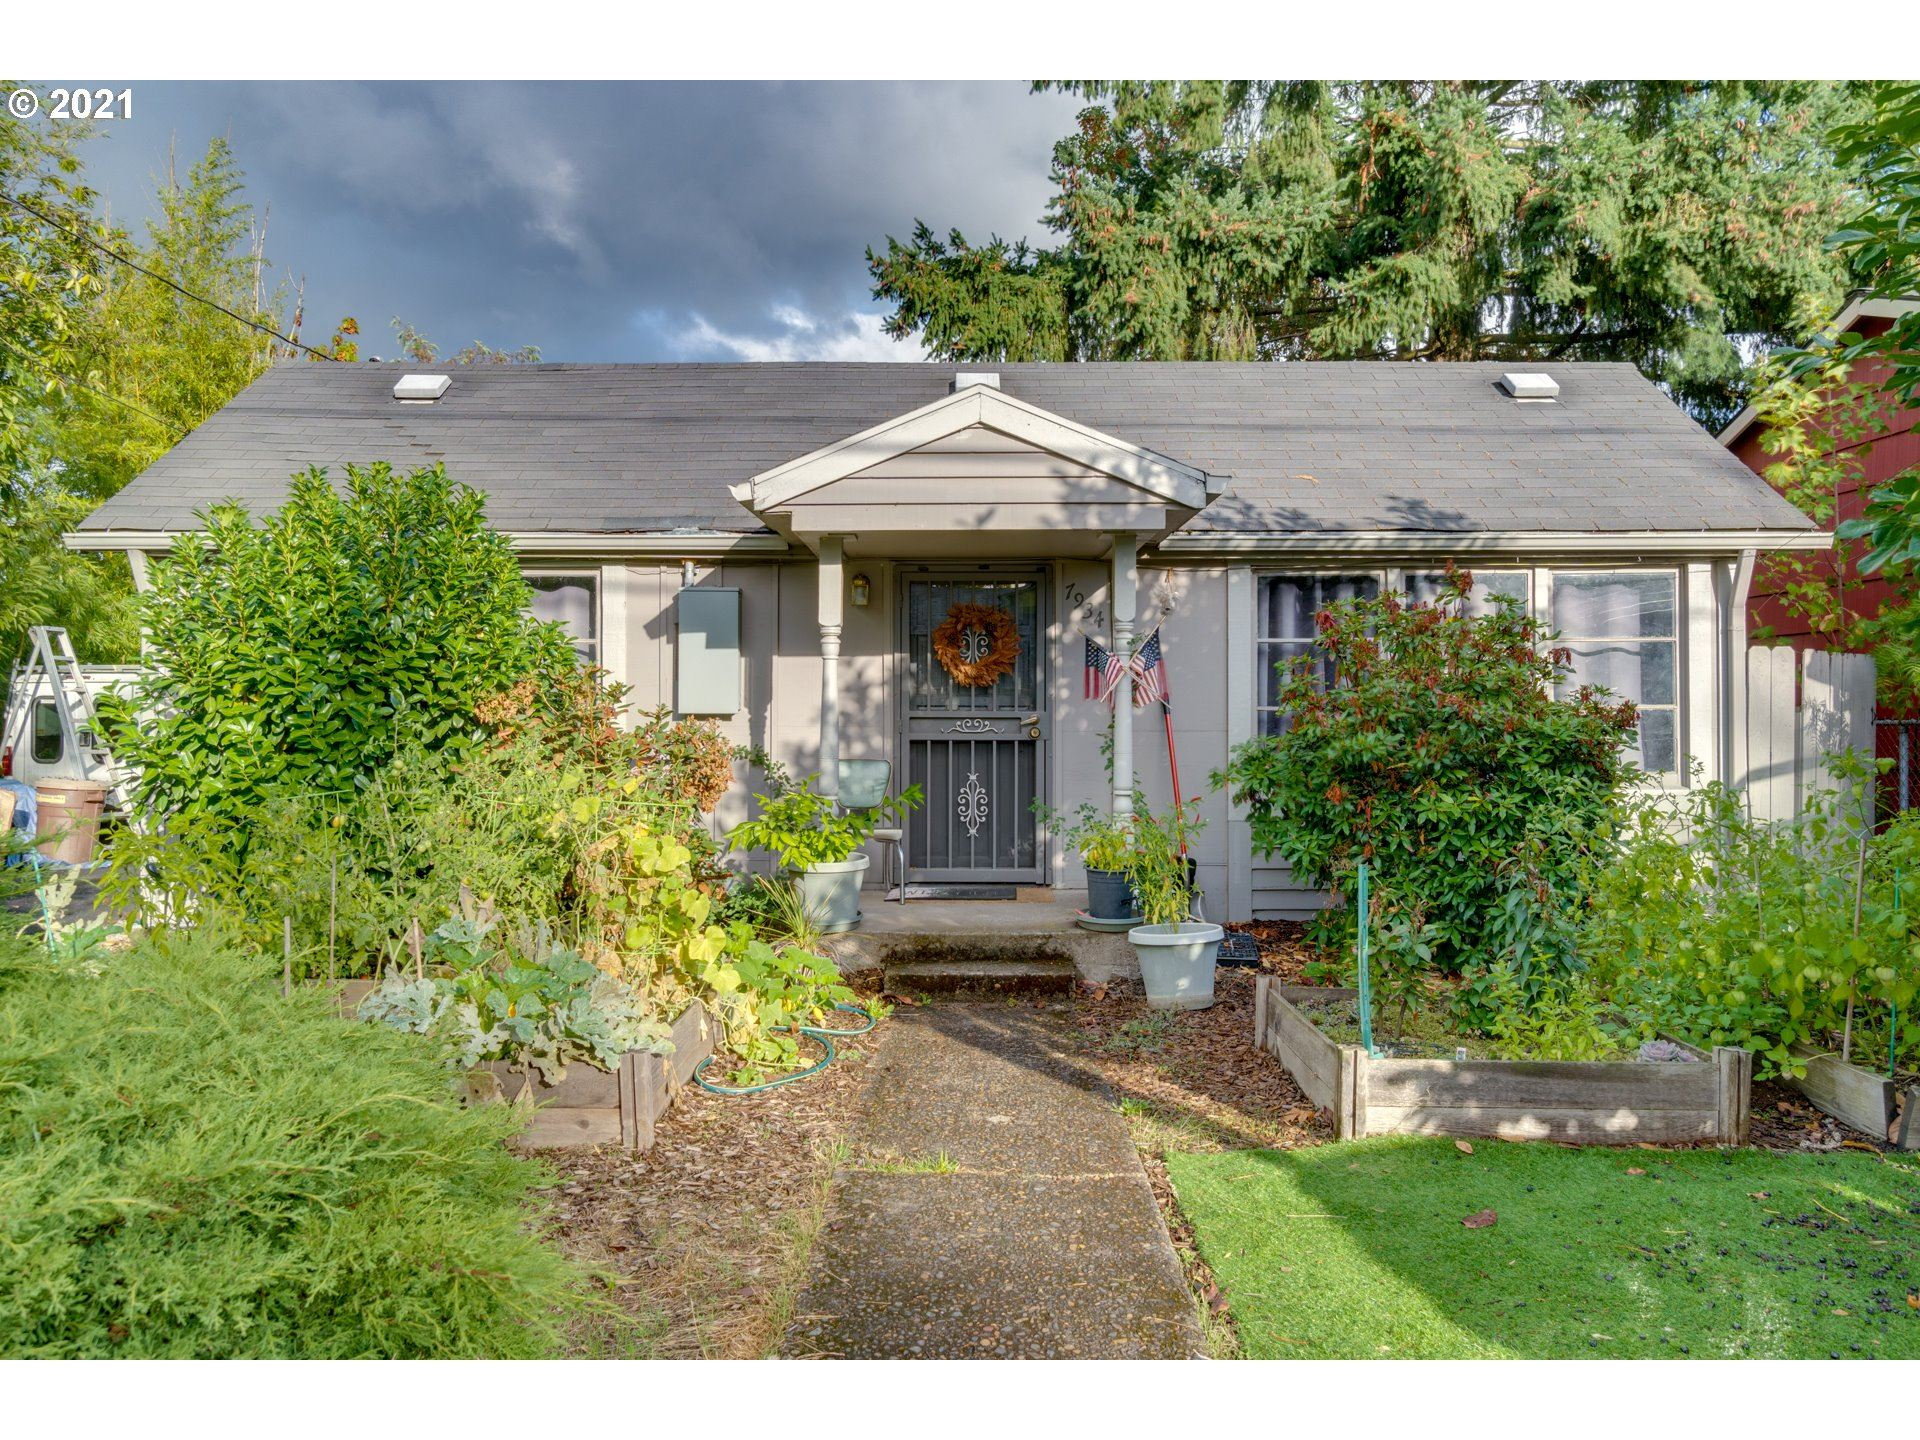 7934 SE 65TH AVE, Portland, OR 97206 - MLS#: 21621541